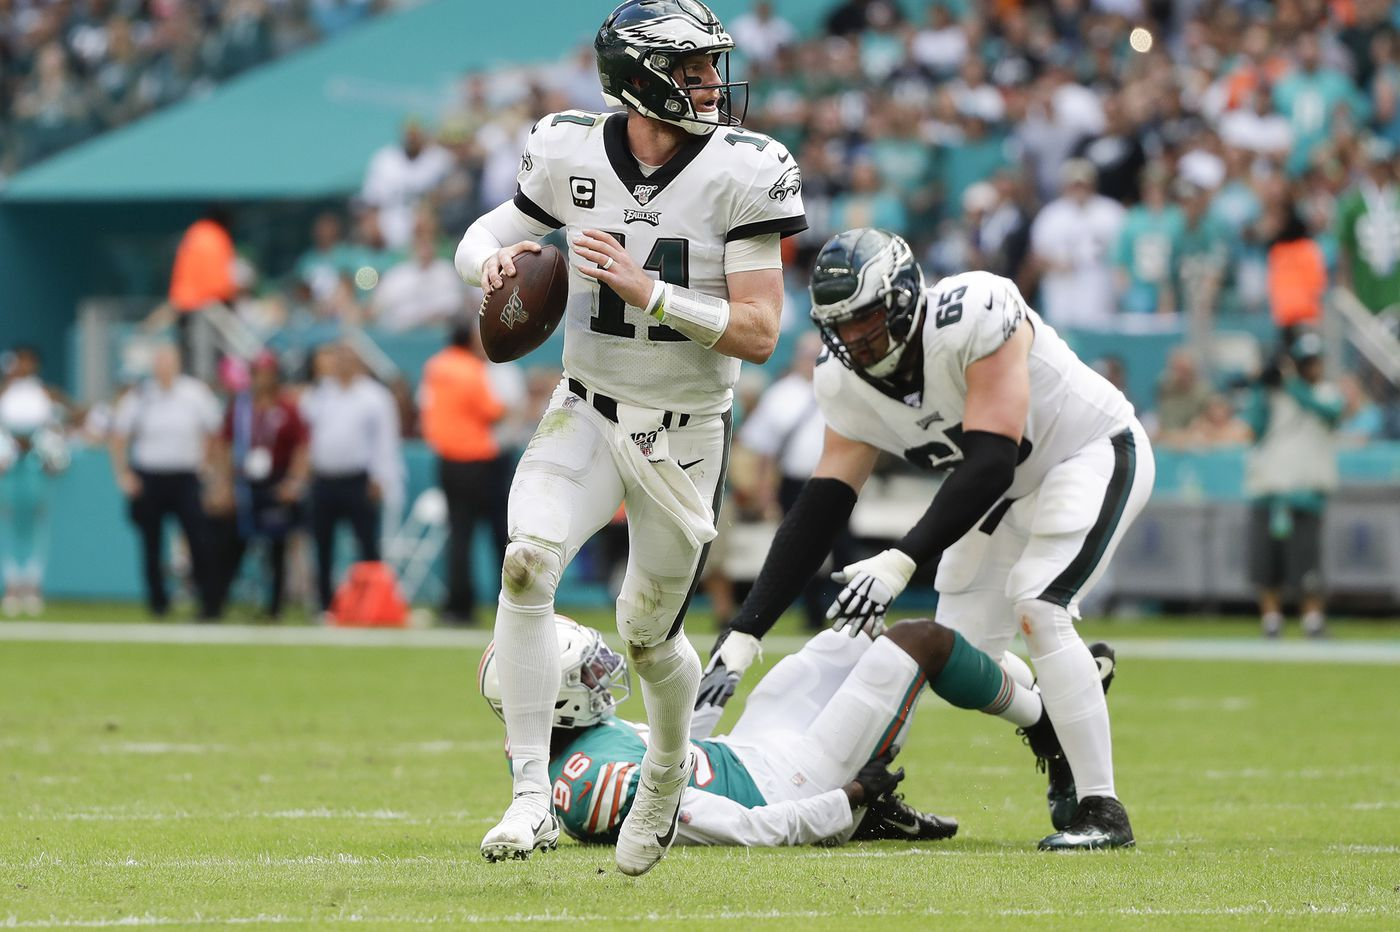 From Tom Brady to Nick Foles to John Elway, how notable quarterbacks fared in their first career playoff starts